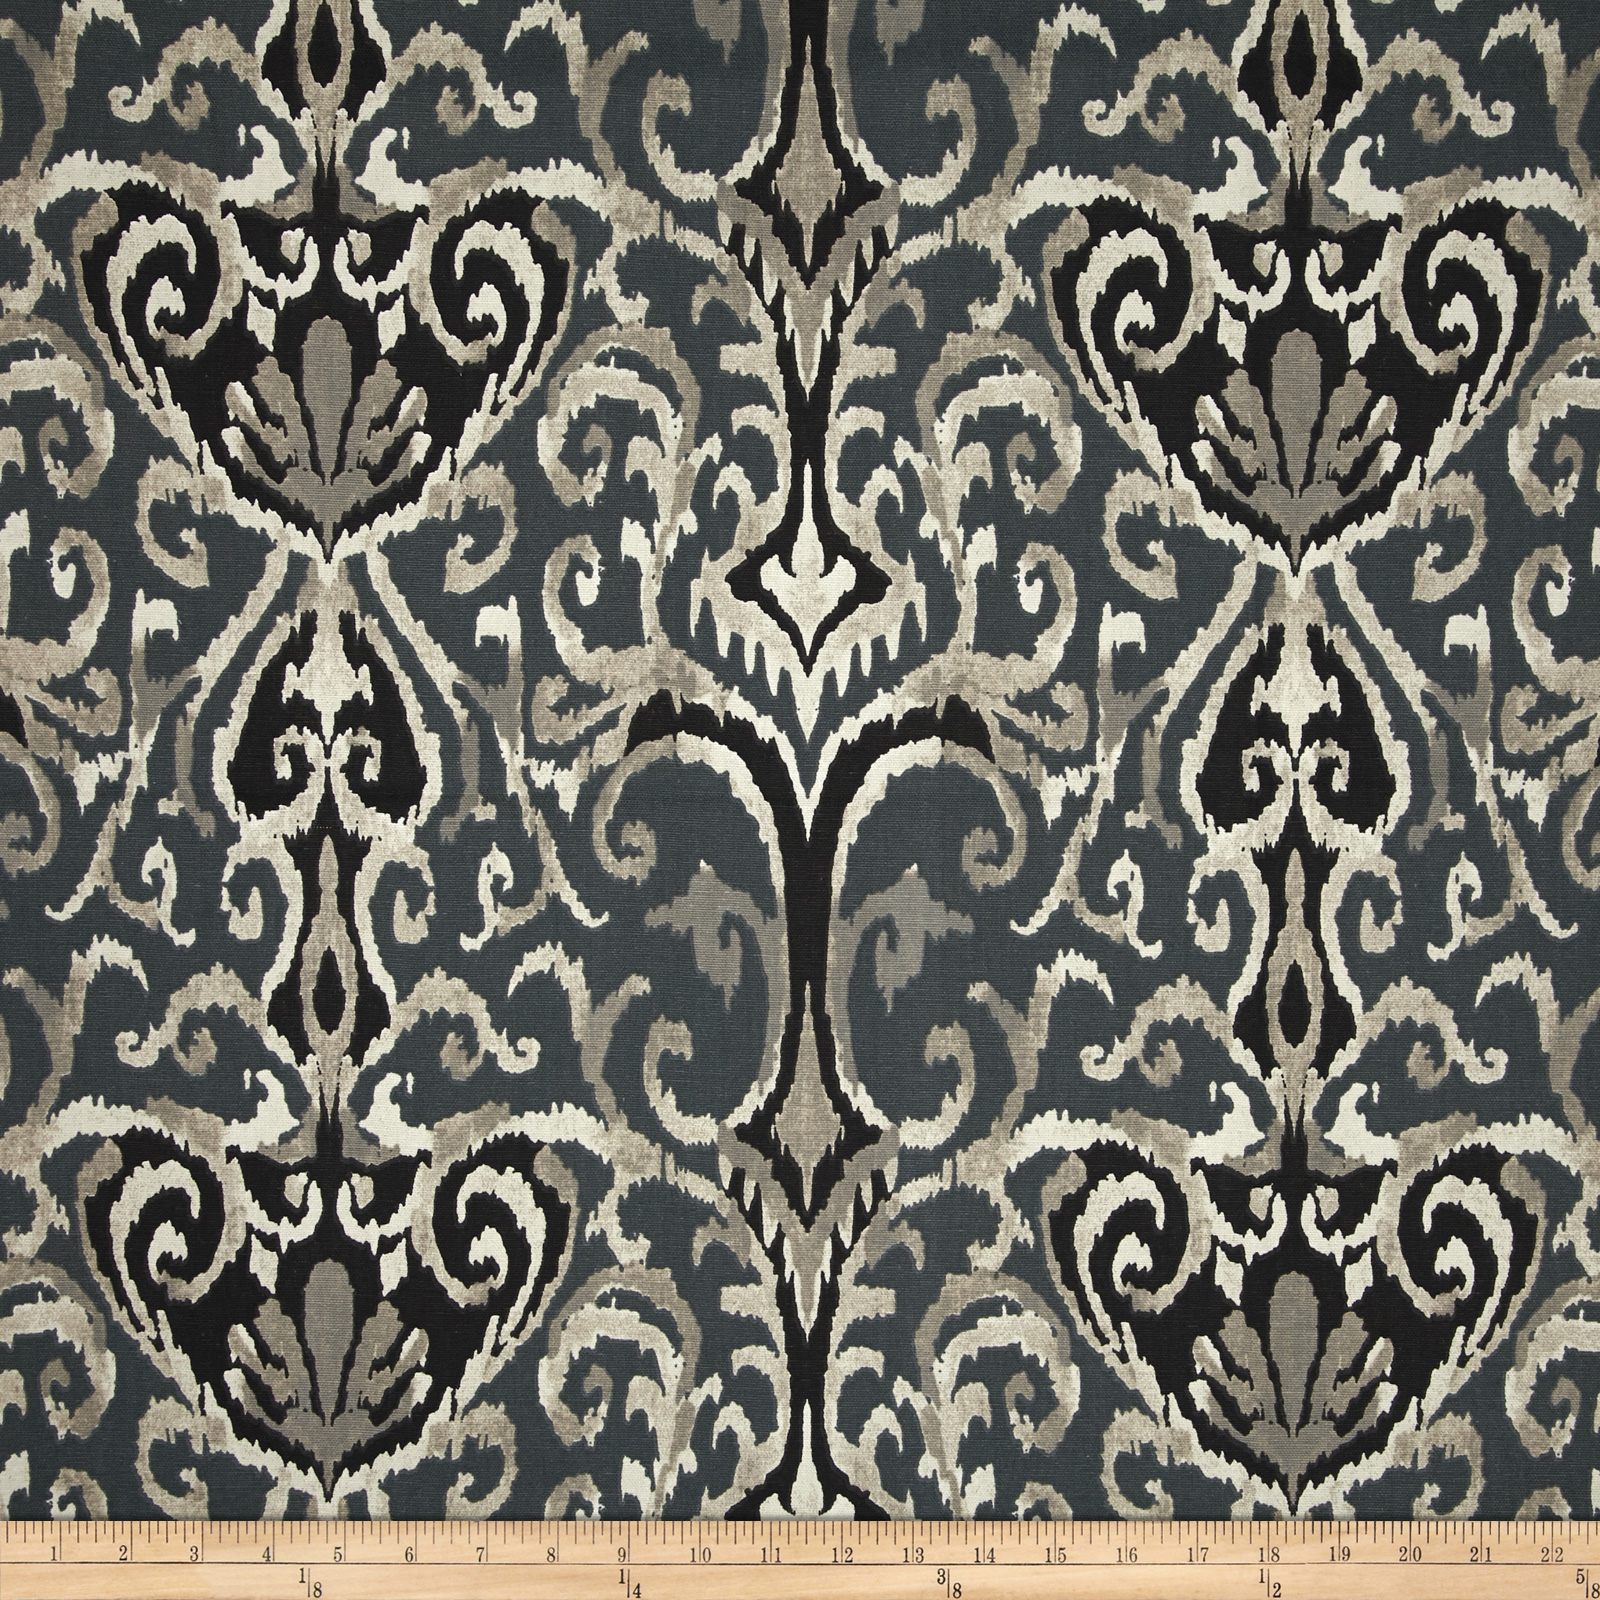 Magnolia Home Fashions Winchester Ikat Midnight Fabric by Magnolia in USA